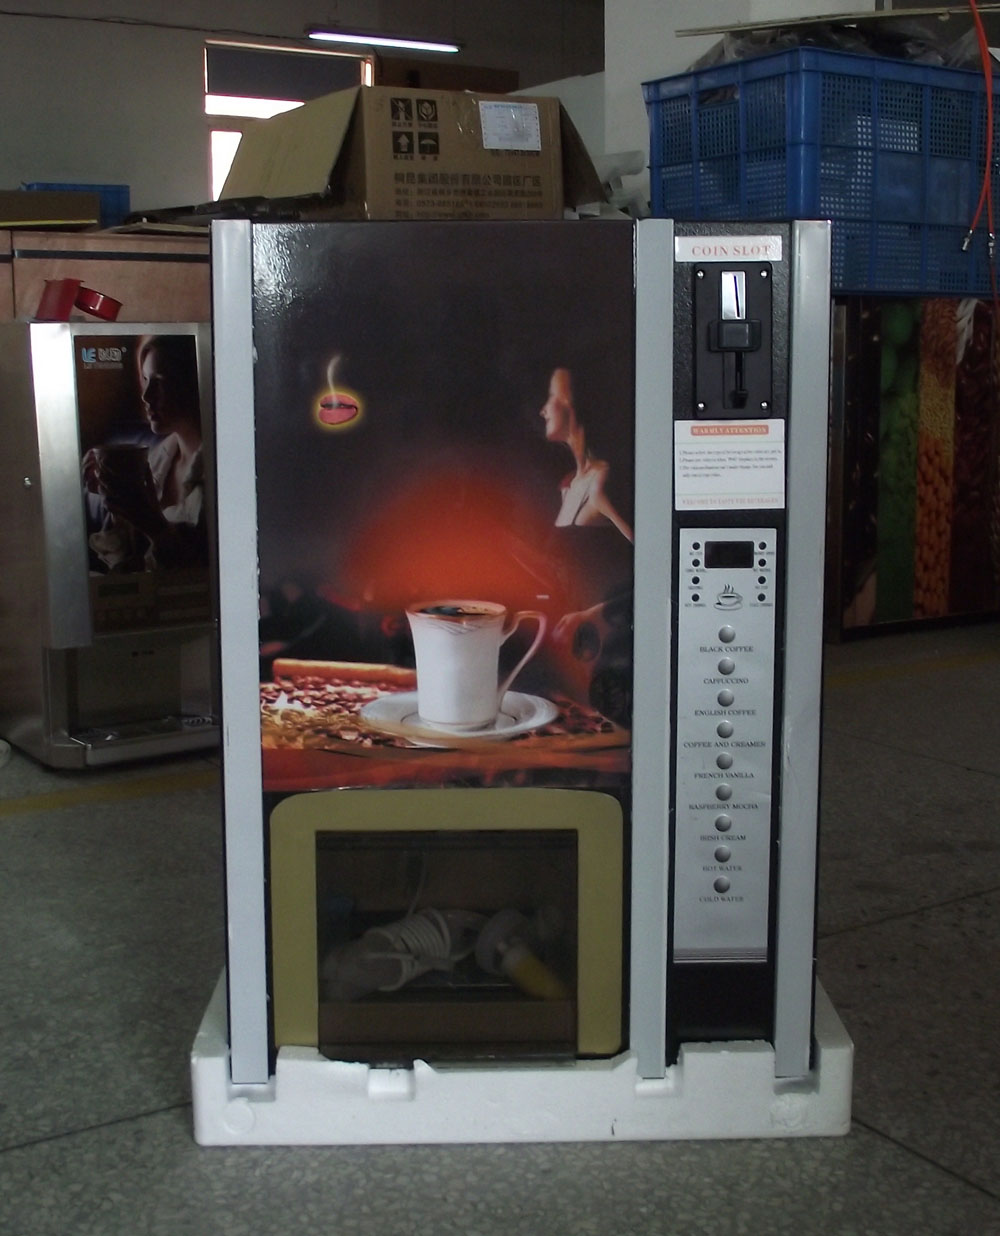 цена на Bill acceptor Coffee vending machine 7 Hot Premixed Drinks and one hot water and one cold water